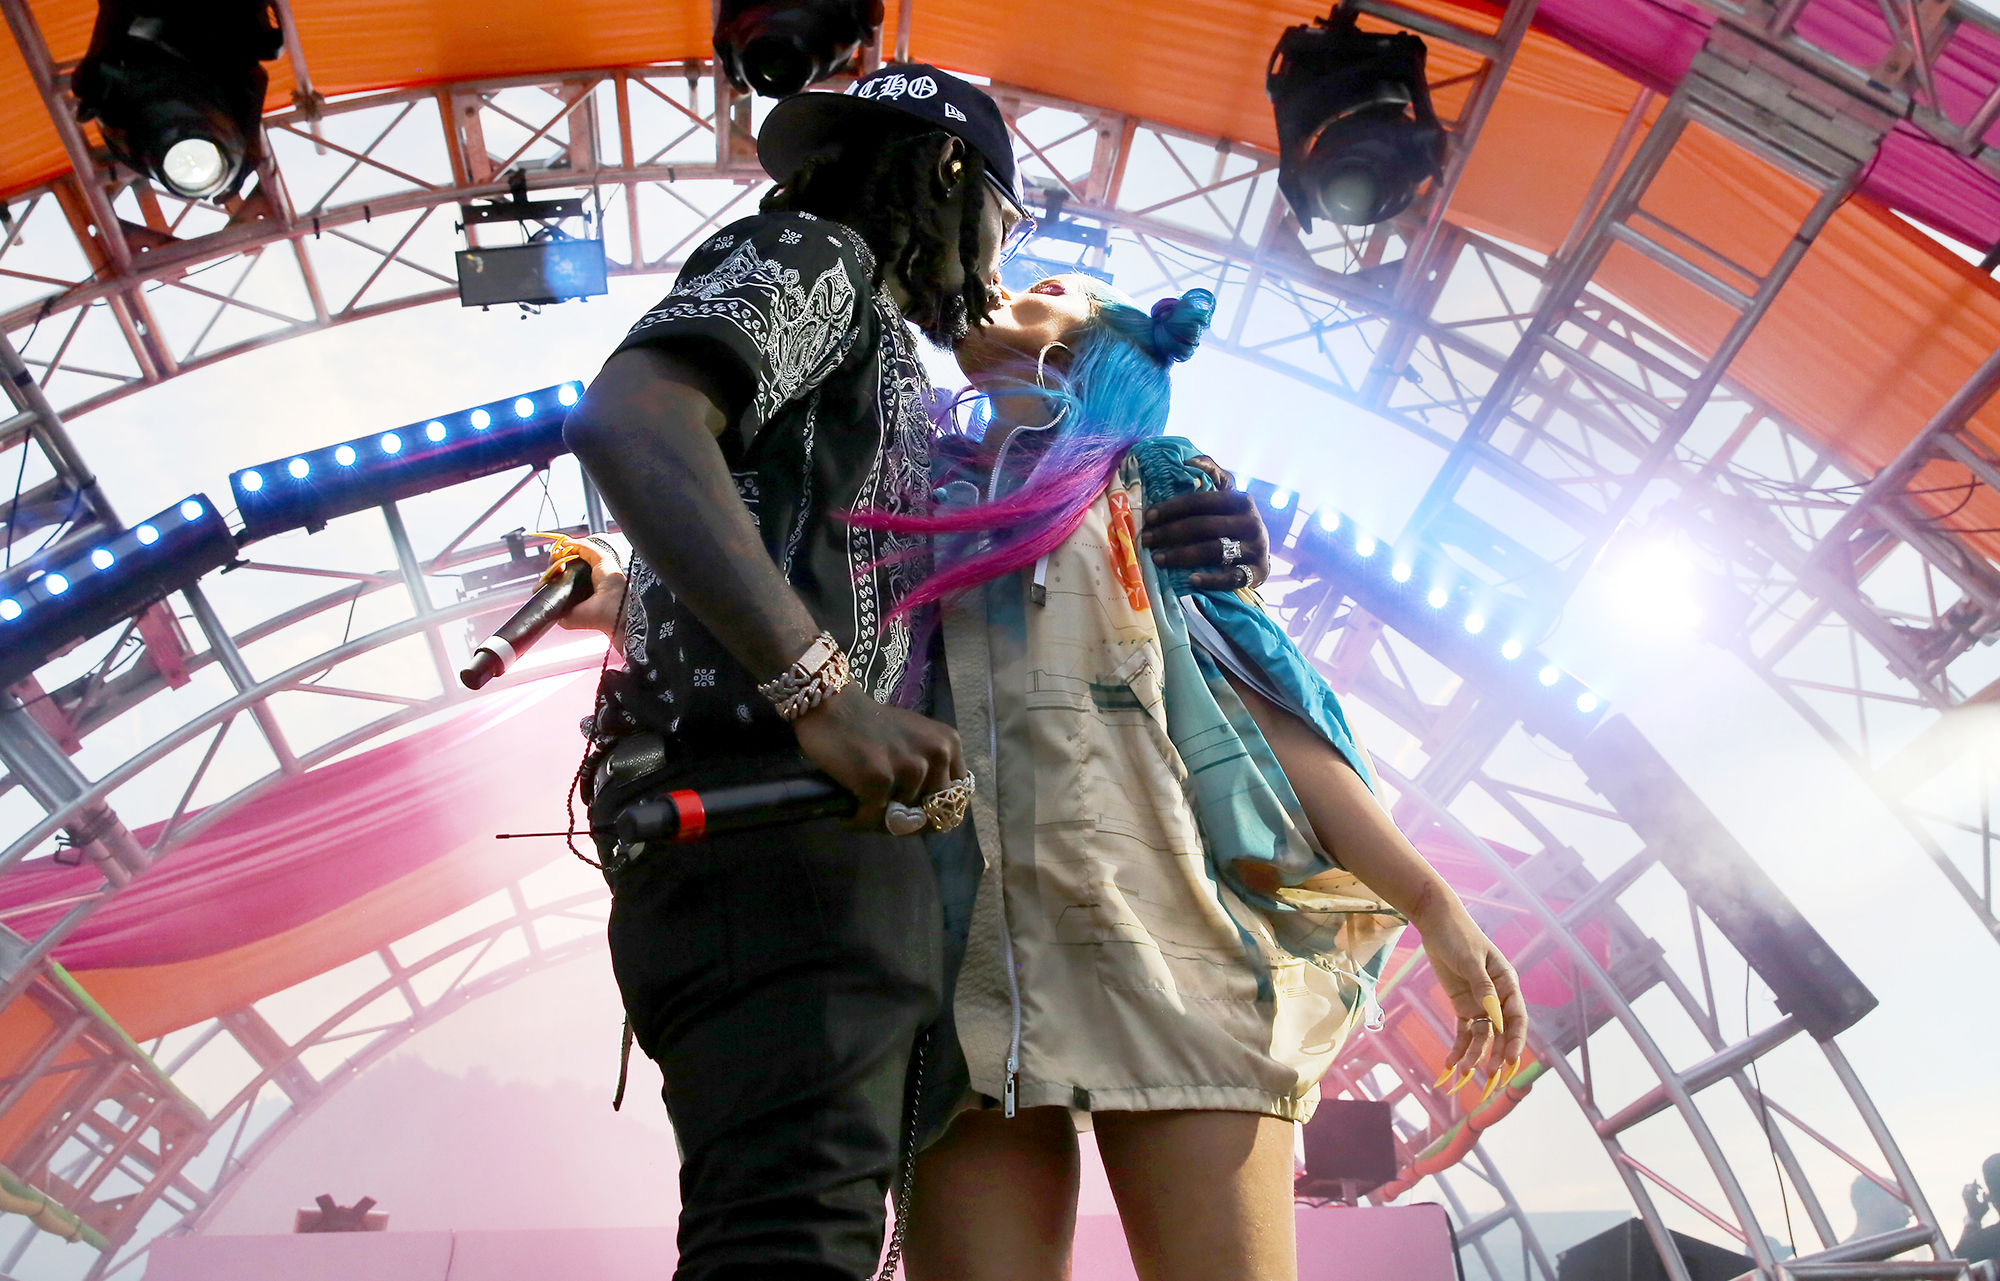 cardi-b-offset-coachella-pda - The pair embraced on stage at the REVOLVEfestival.